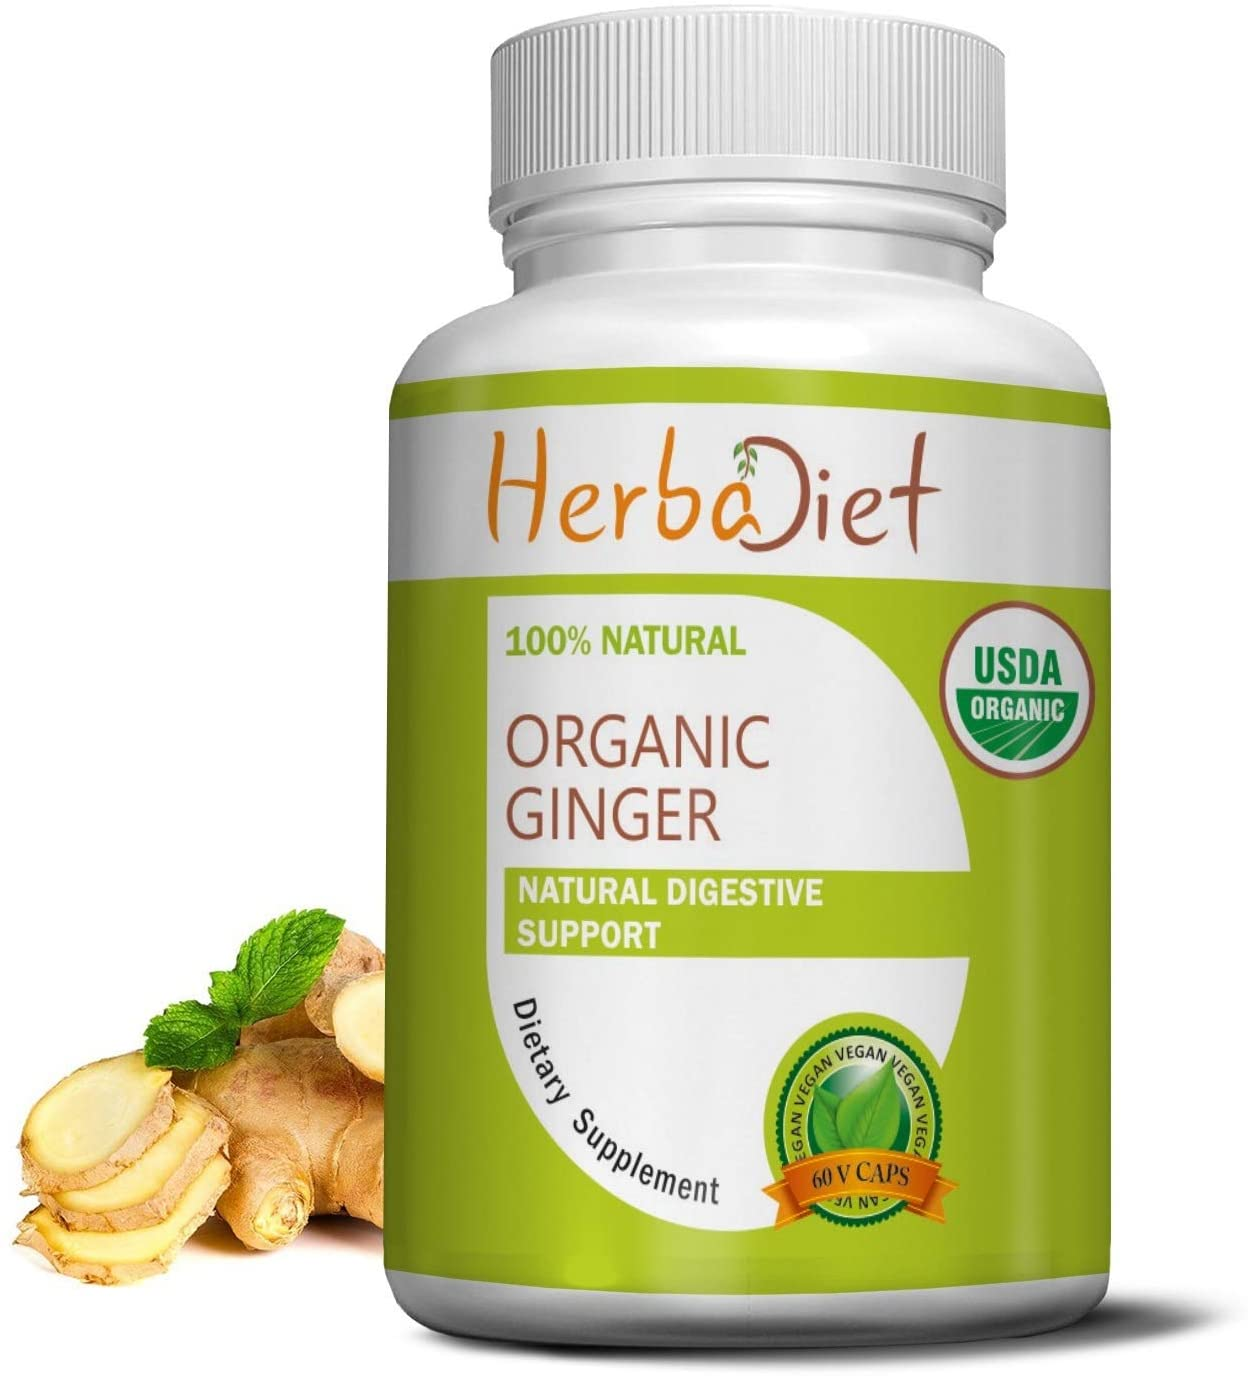 Organic Ginger Root 400mg Capsules | Antioxidant, Metabolism Booster, Immune System & Digestive Support Supplement | Non-GMO, Gluten Free (60 Capsules)